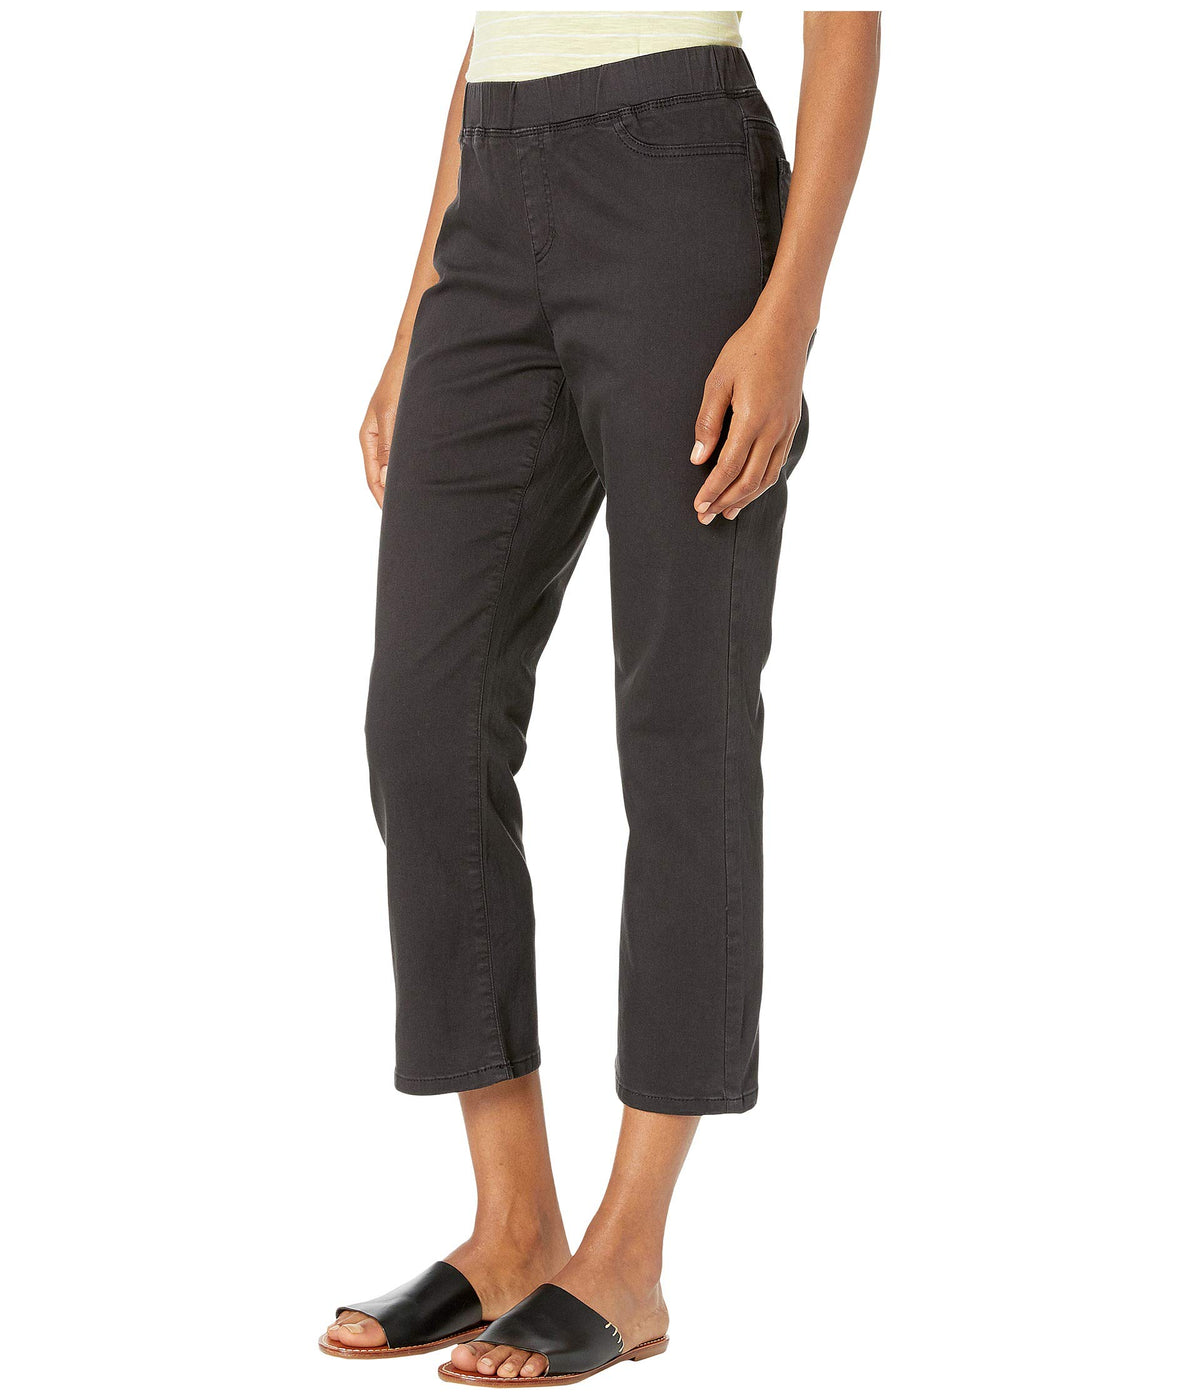 Garment Dyed Organic Cotton Stretch Denim Slim Knee Cropped Jeans in Washed Black